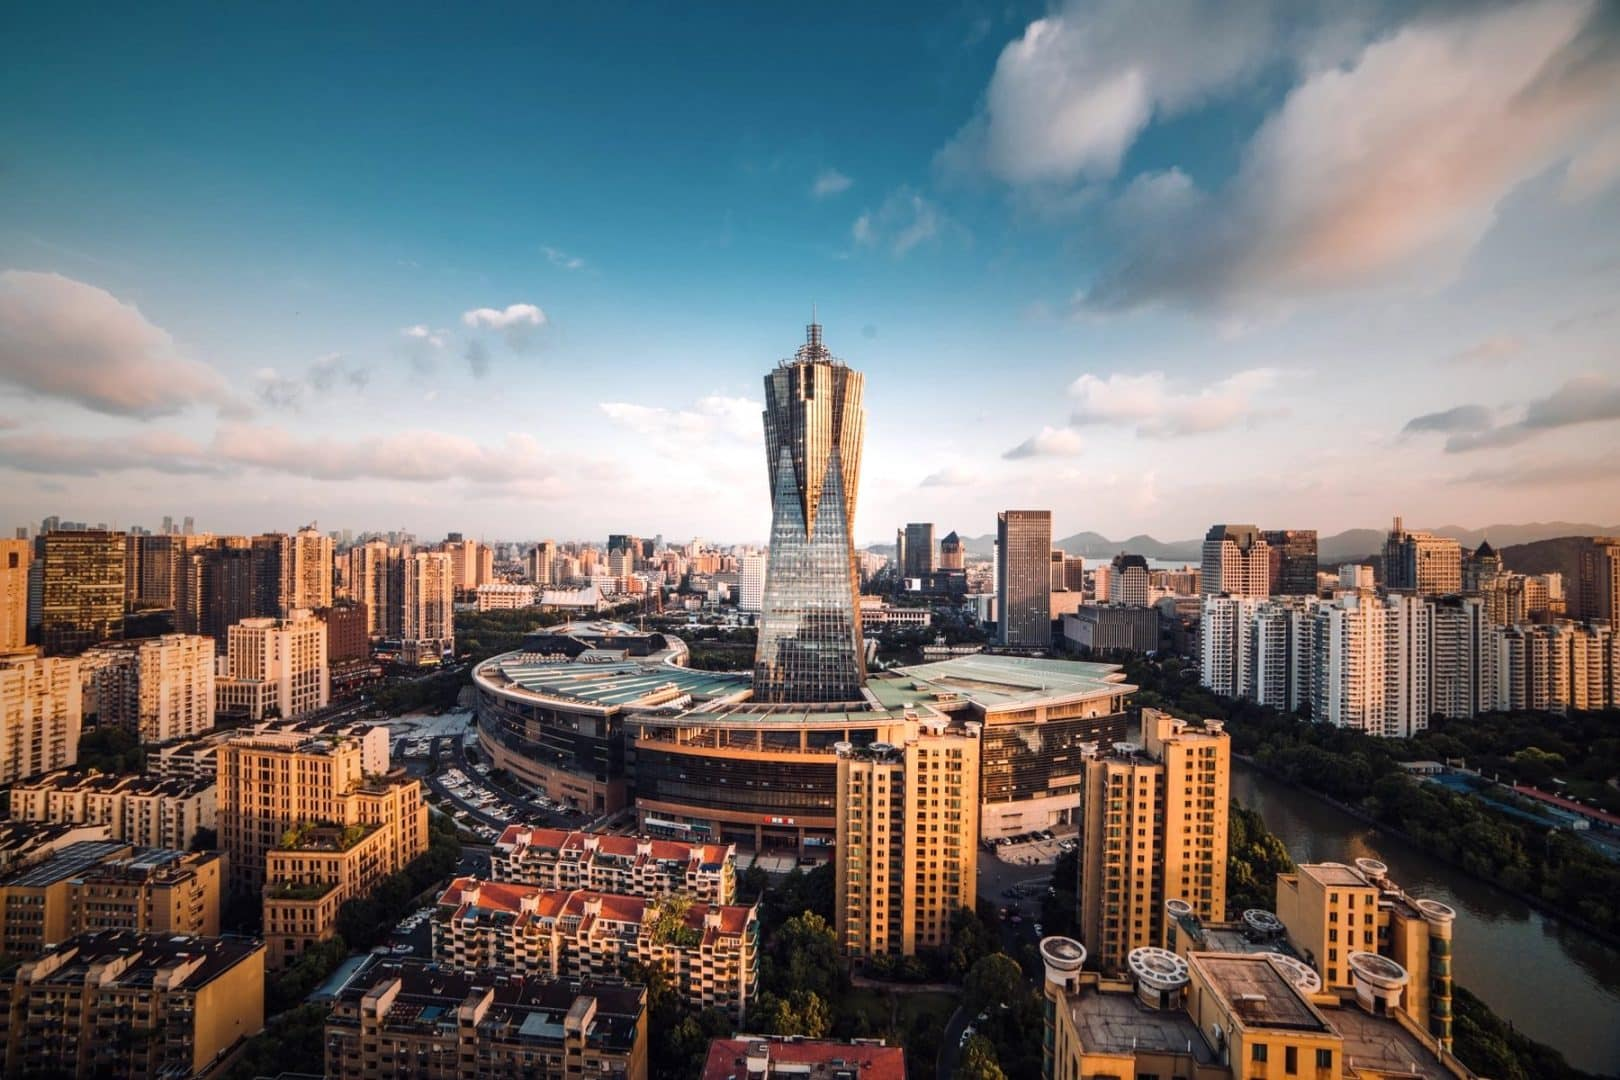 Best Startups 2020.Top Startups In Hangzhou To Watch Out For In 2020 Top